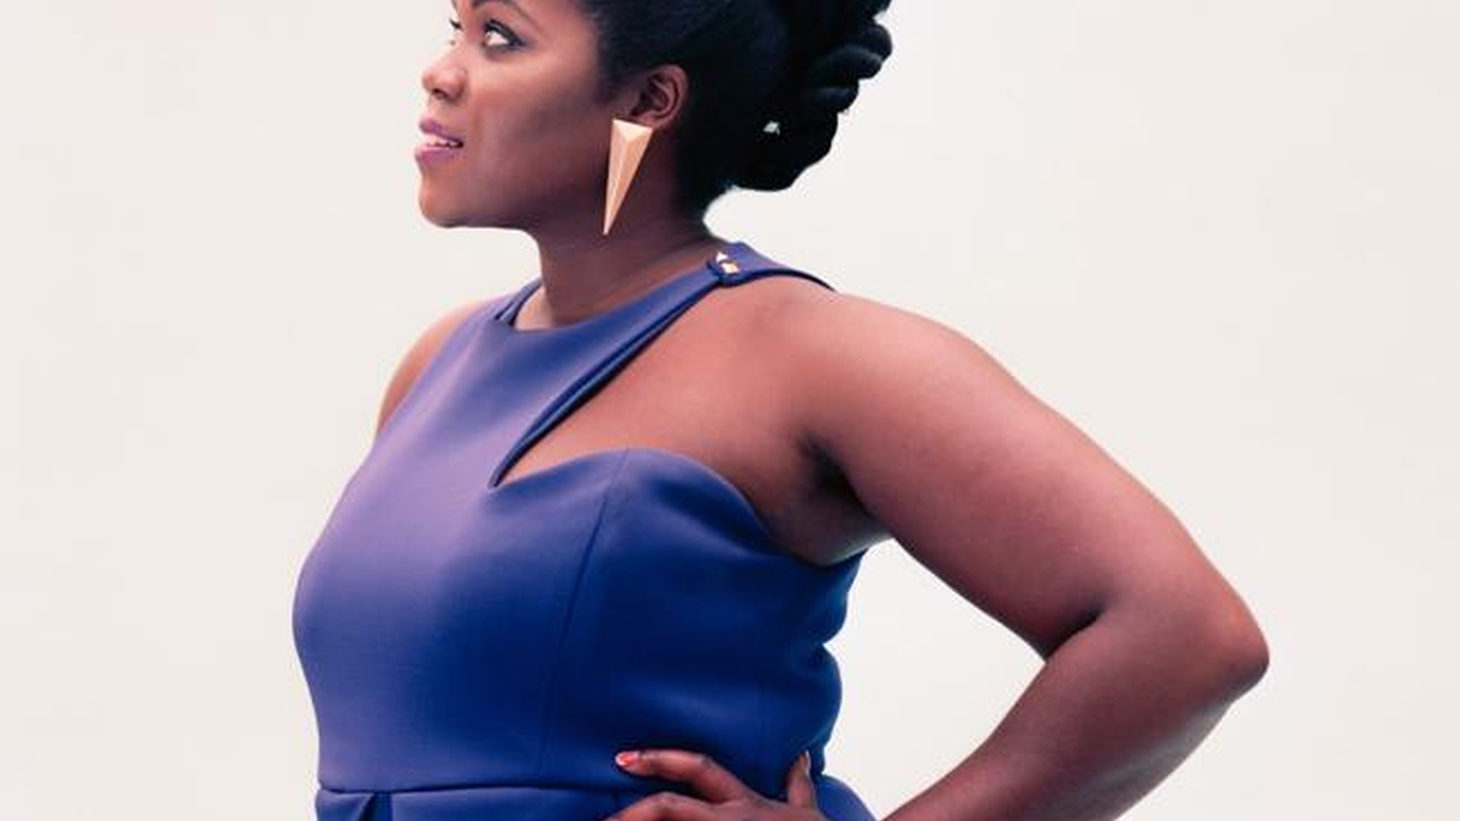 London-based singer Zara McFarlane carries on in the tradition of great female jazz vocalists.